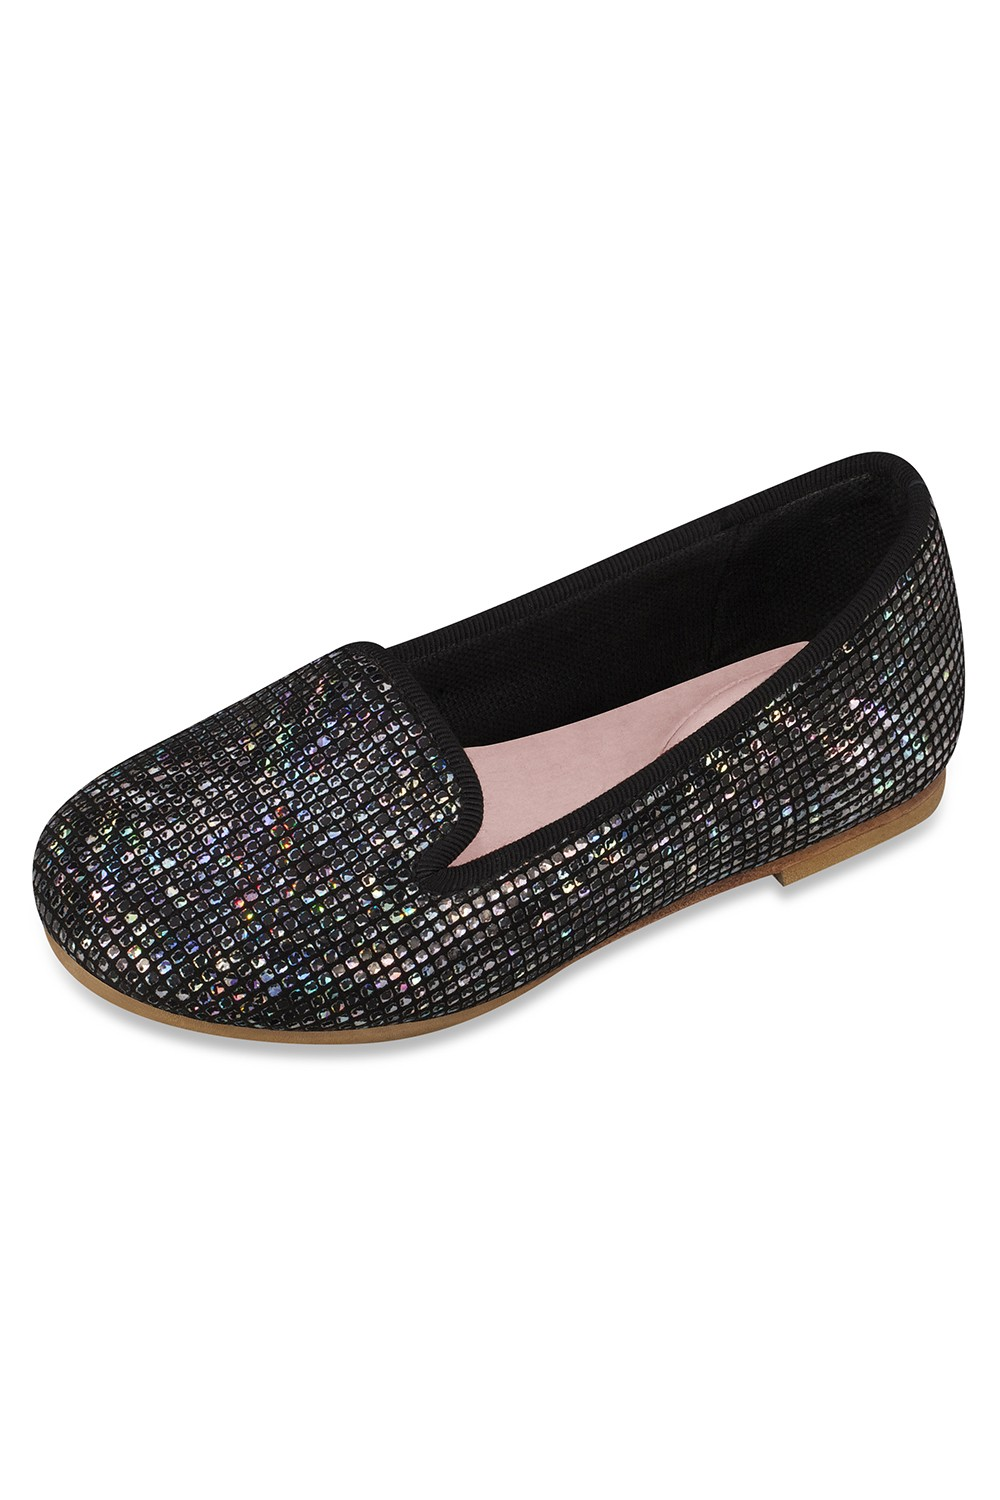 Disco Toddlers Fashion Shoes